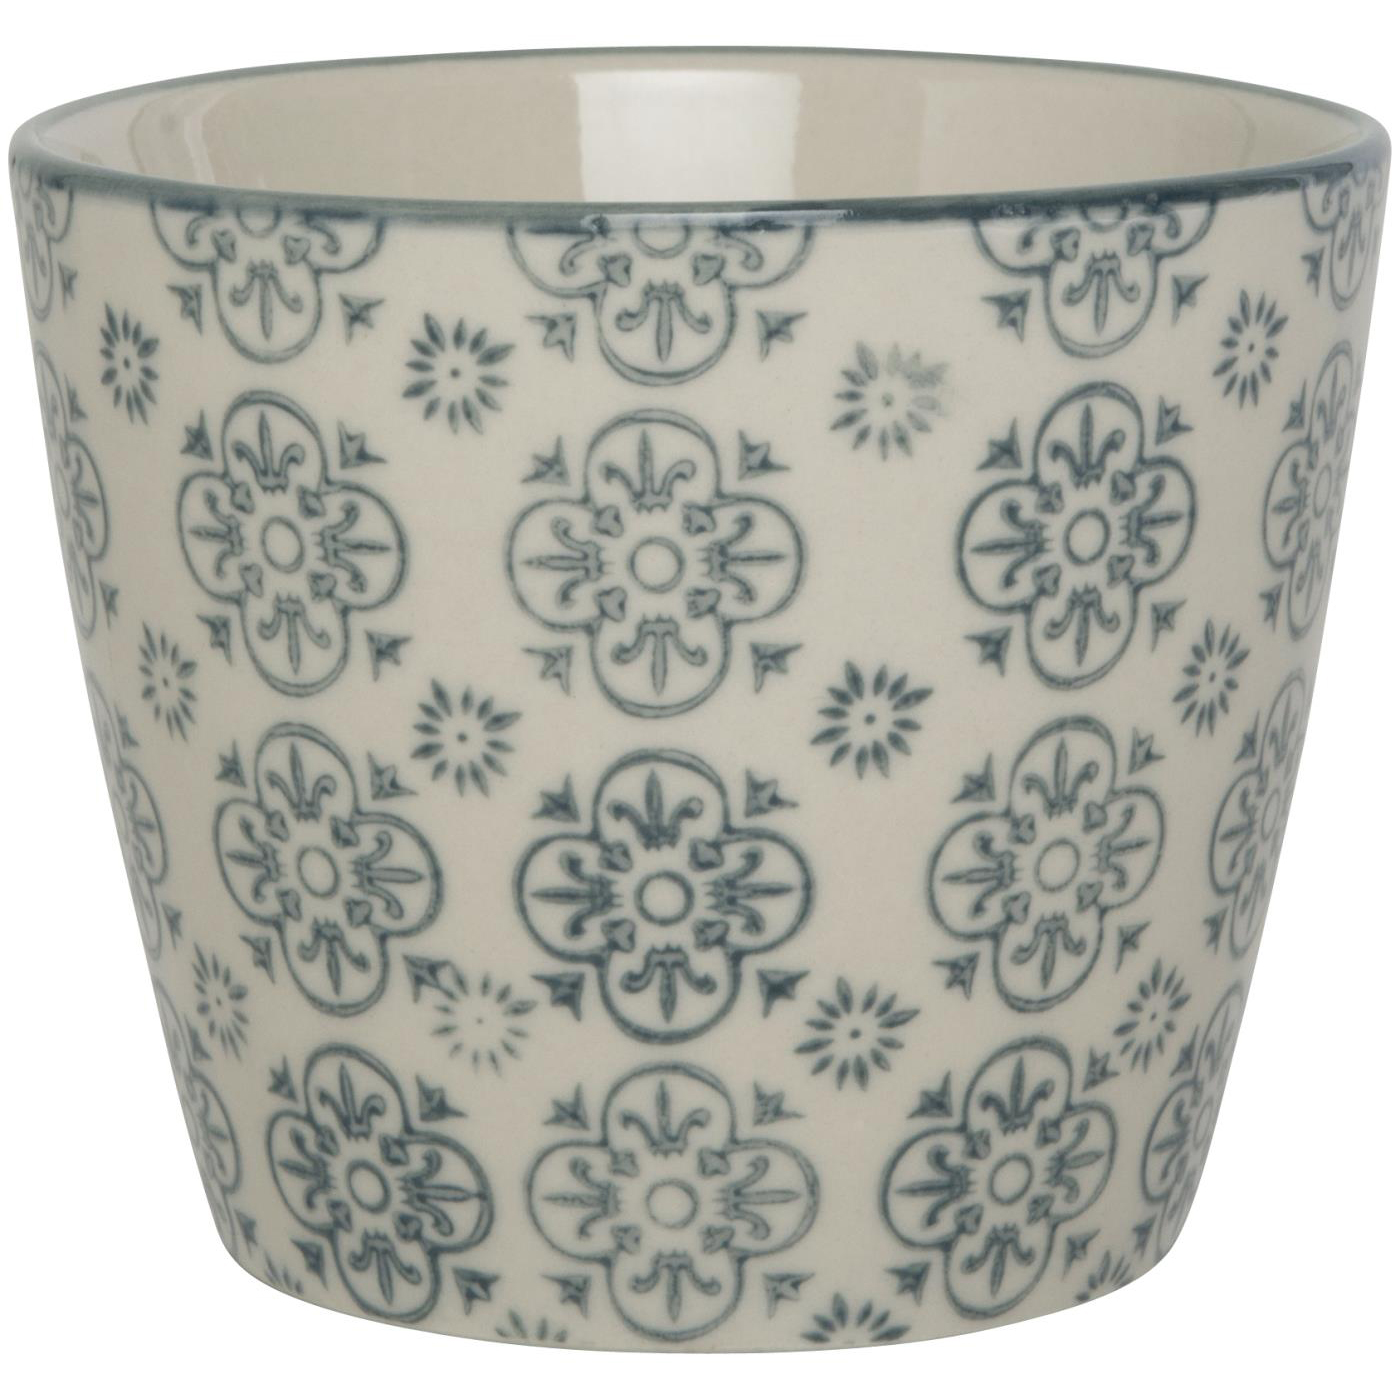 Becher gross - mit grauem Ornament - Muster B -Casablanca - IB Laursen